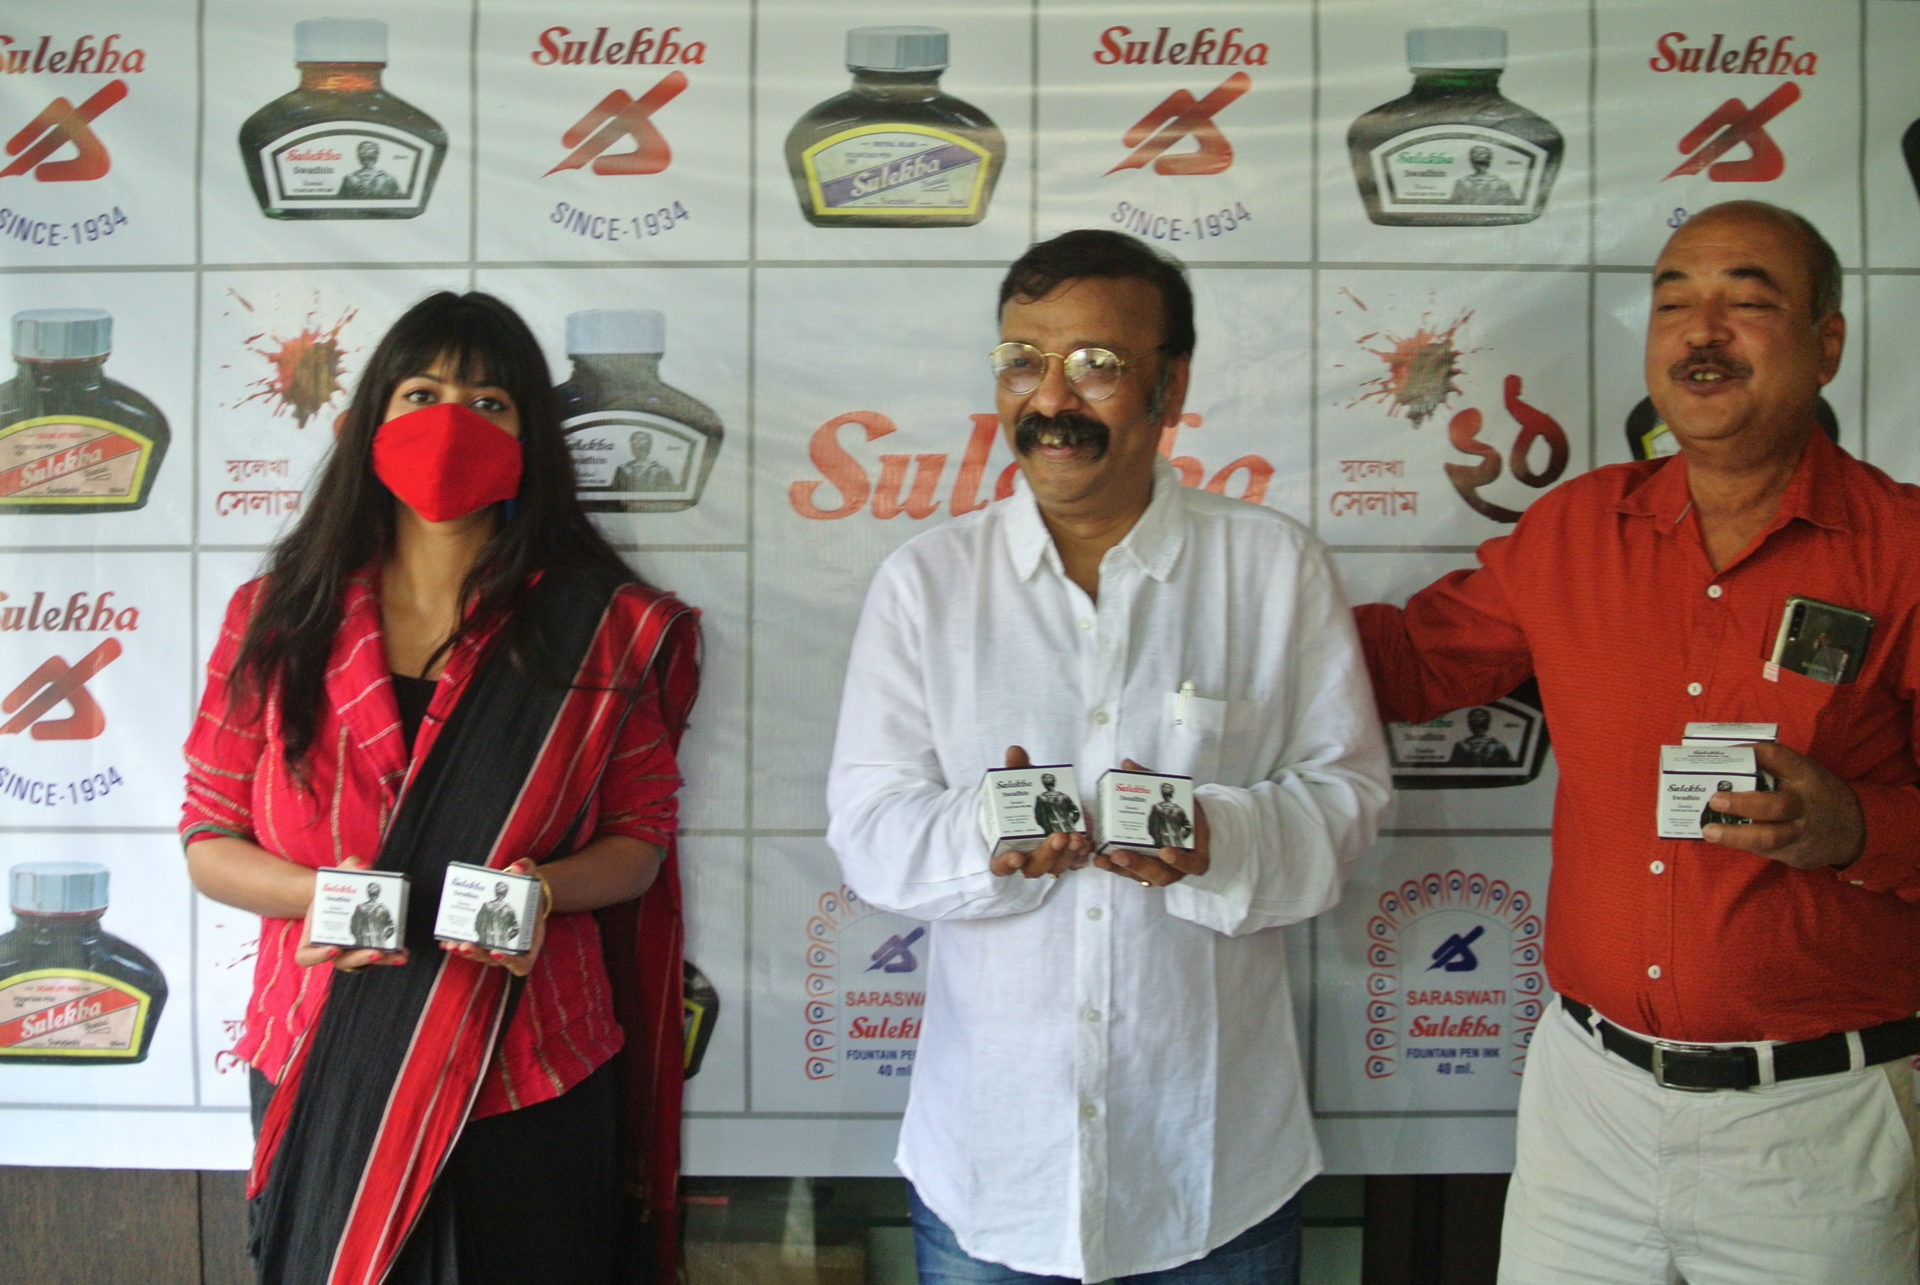 Sulekha launches Swadhin